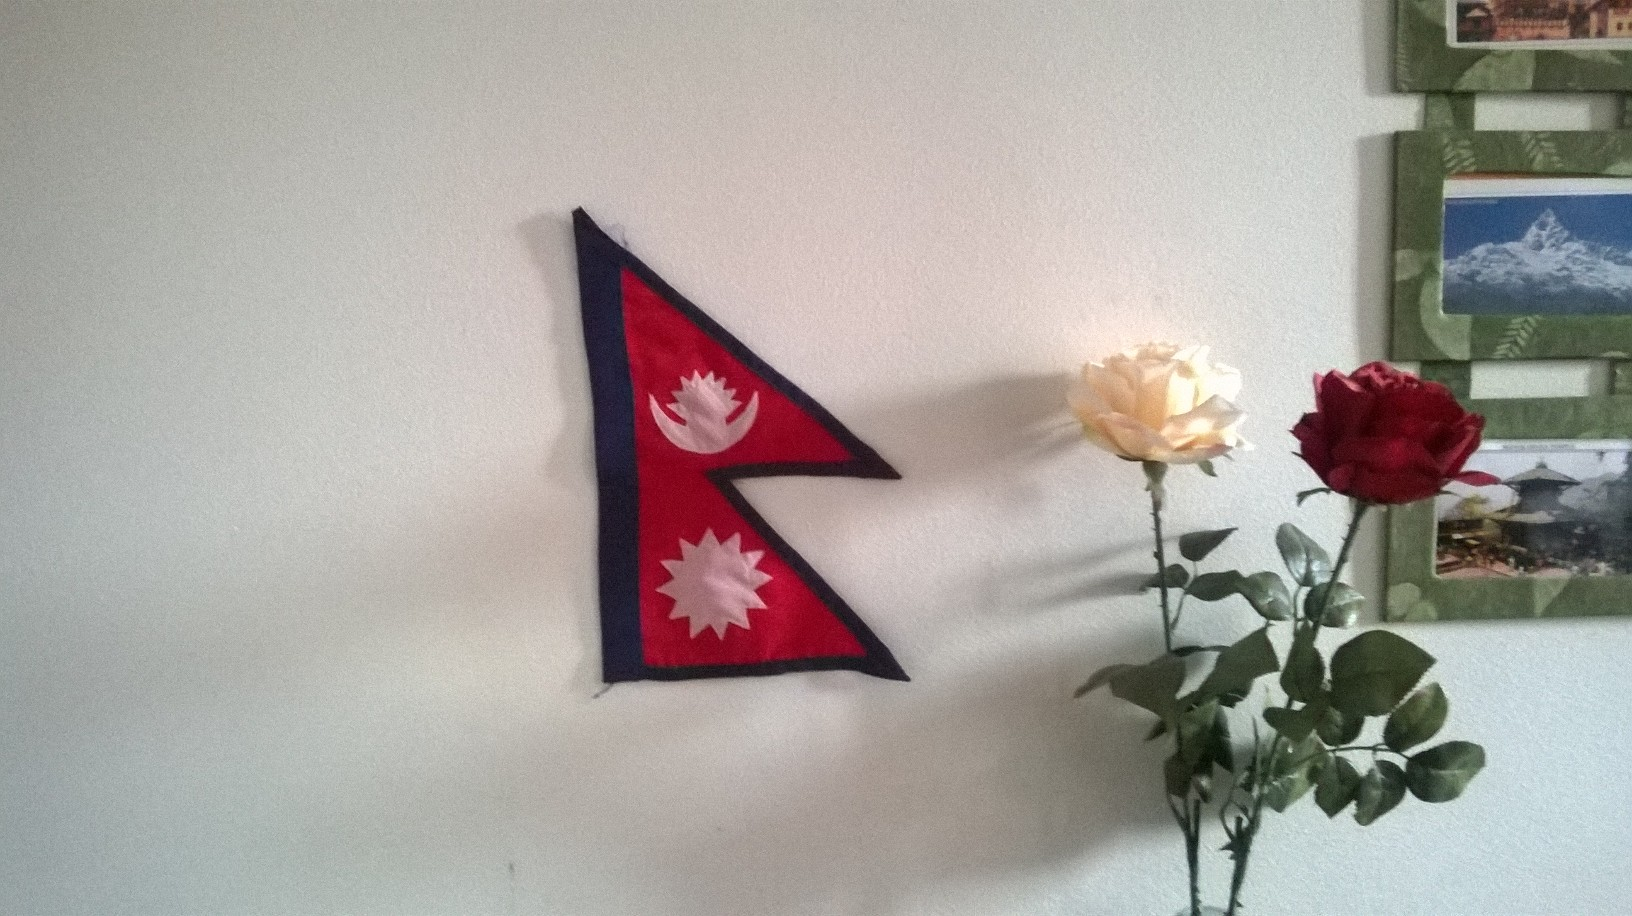 Nepal's national flag is a very common thing you will find on every Nepali home's abroad